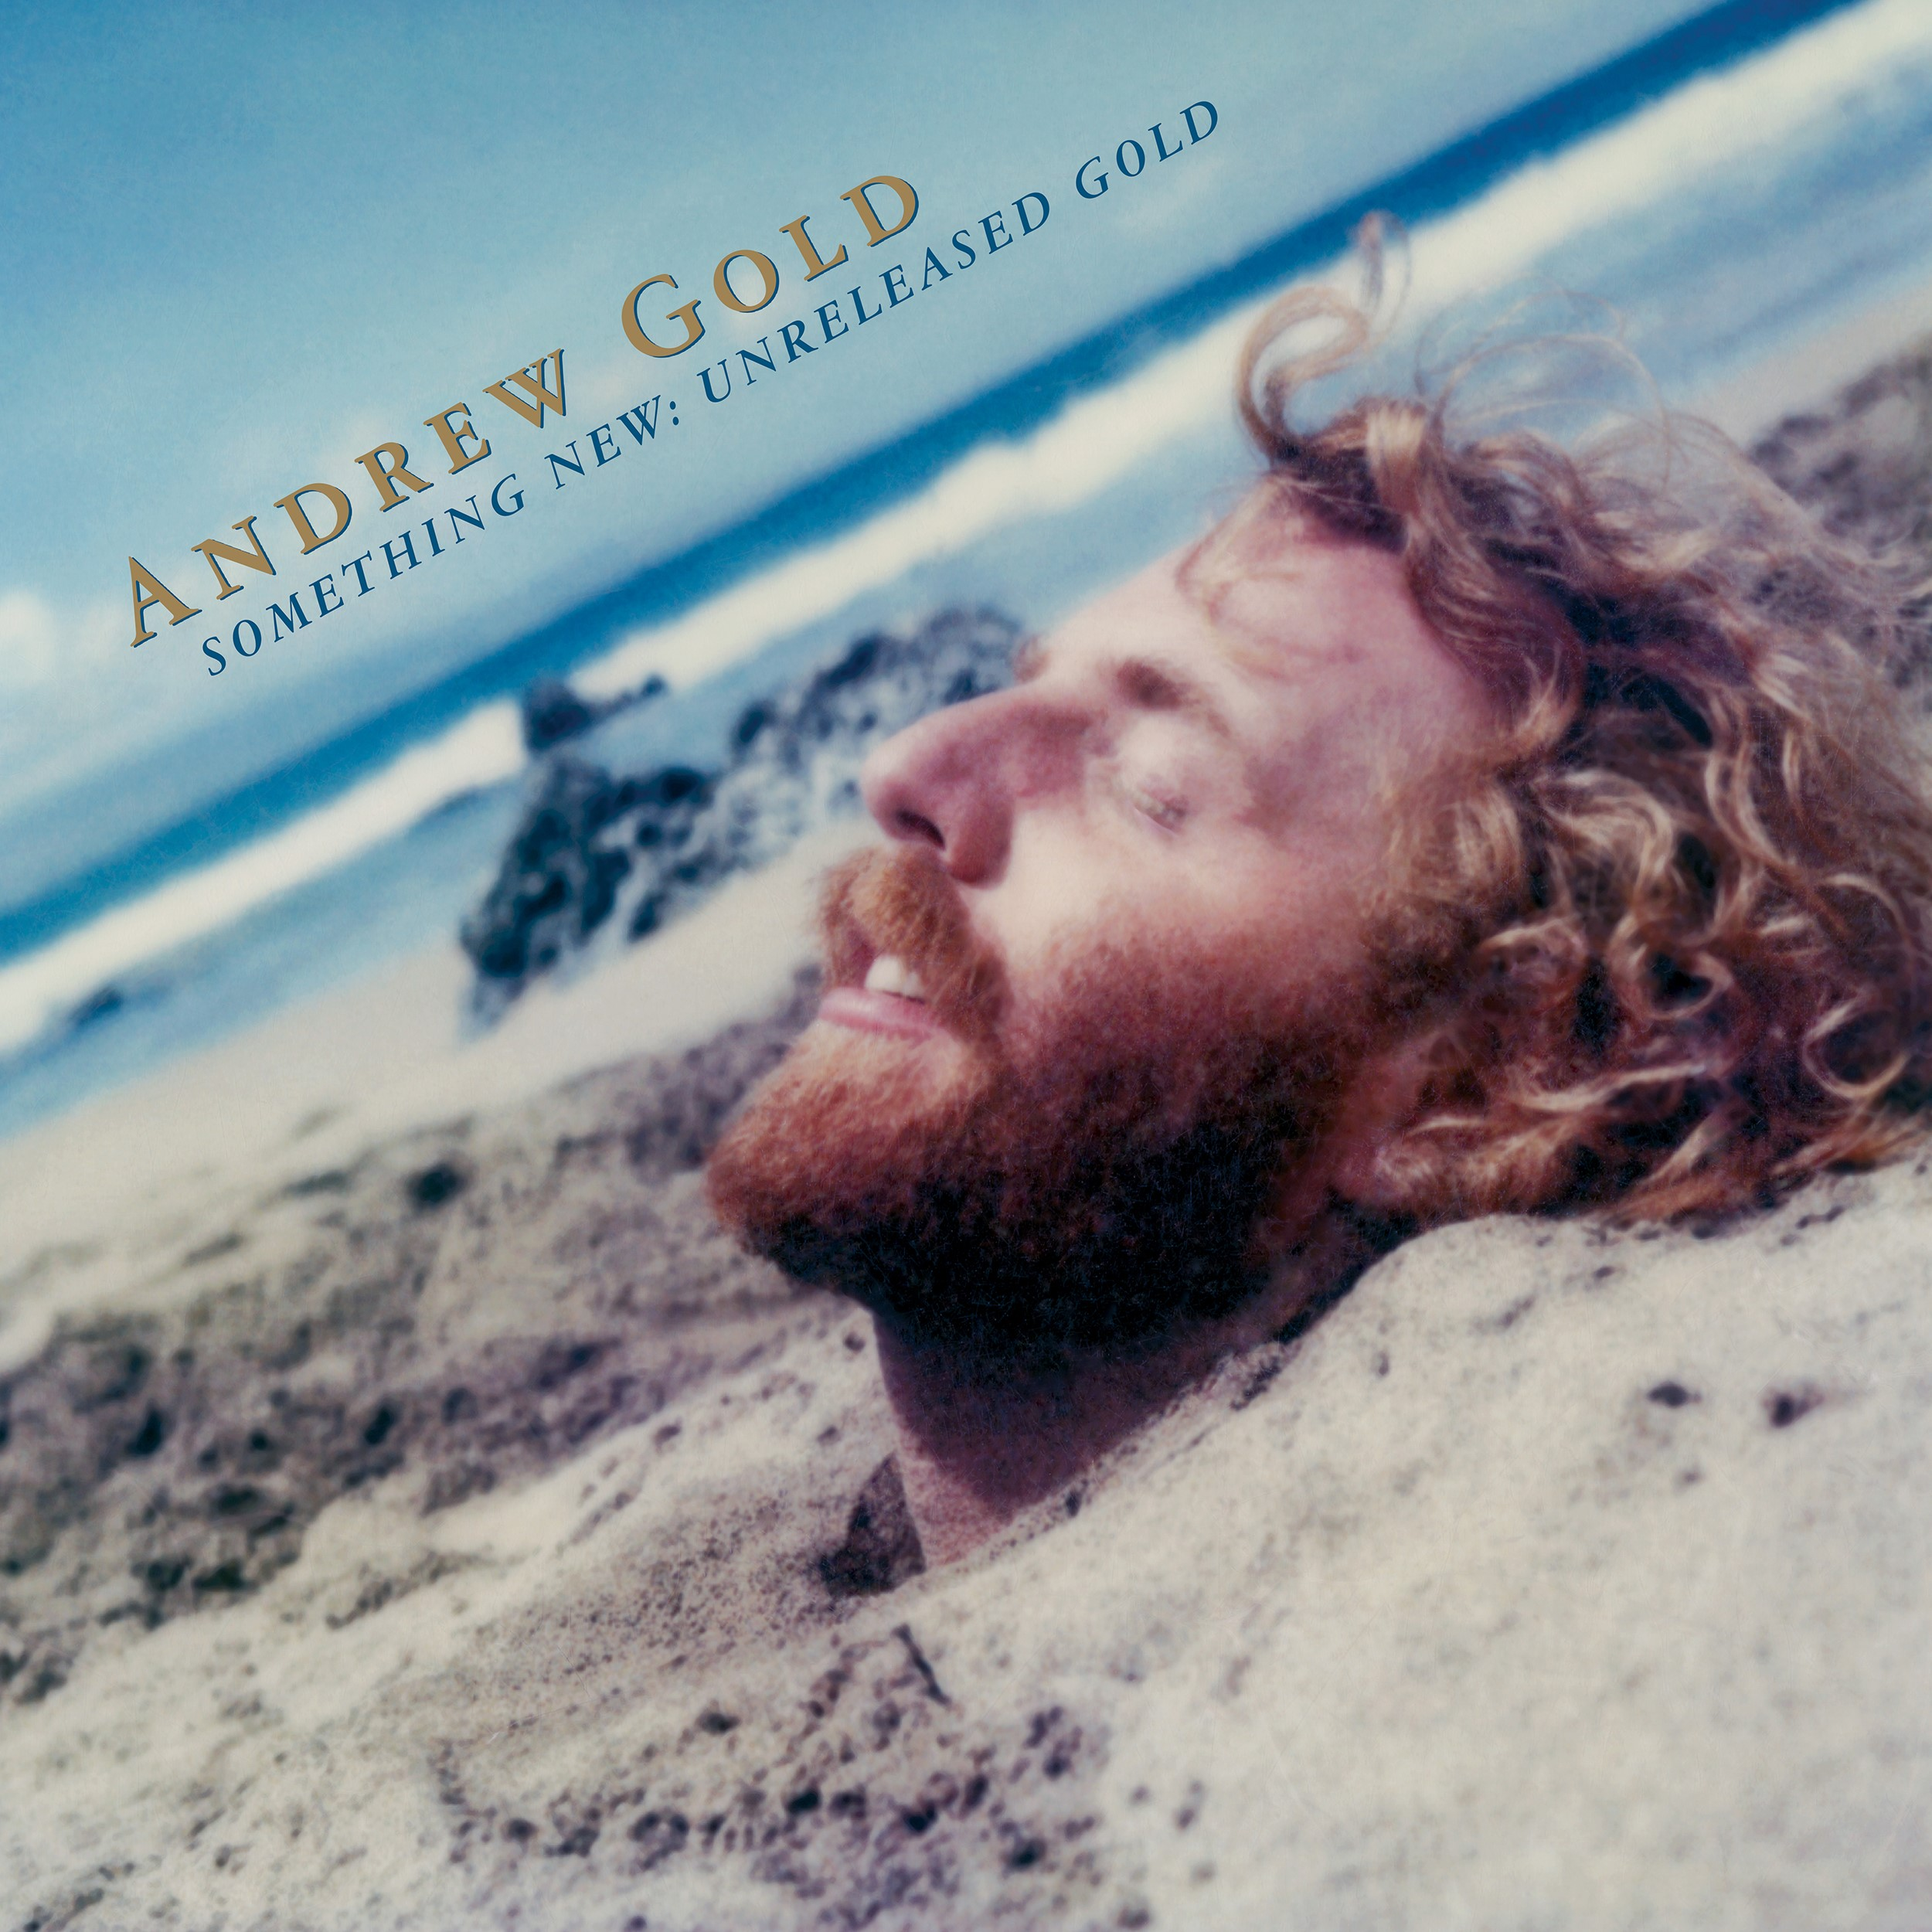 Andrew Gold - Something New: Unreleased Gold [RSD Drops Aug 2020]